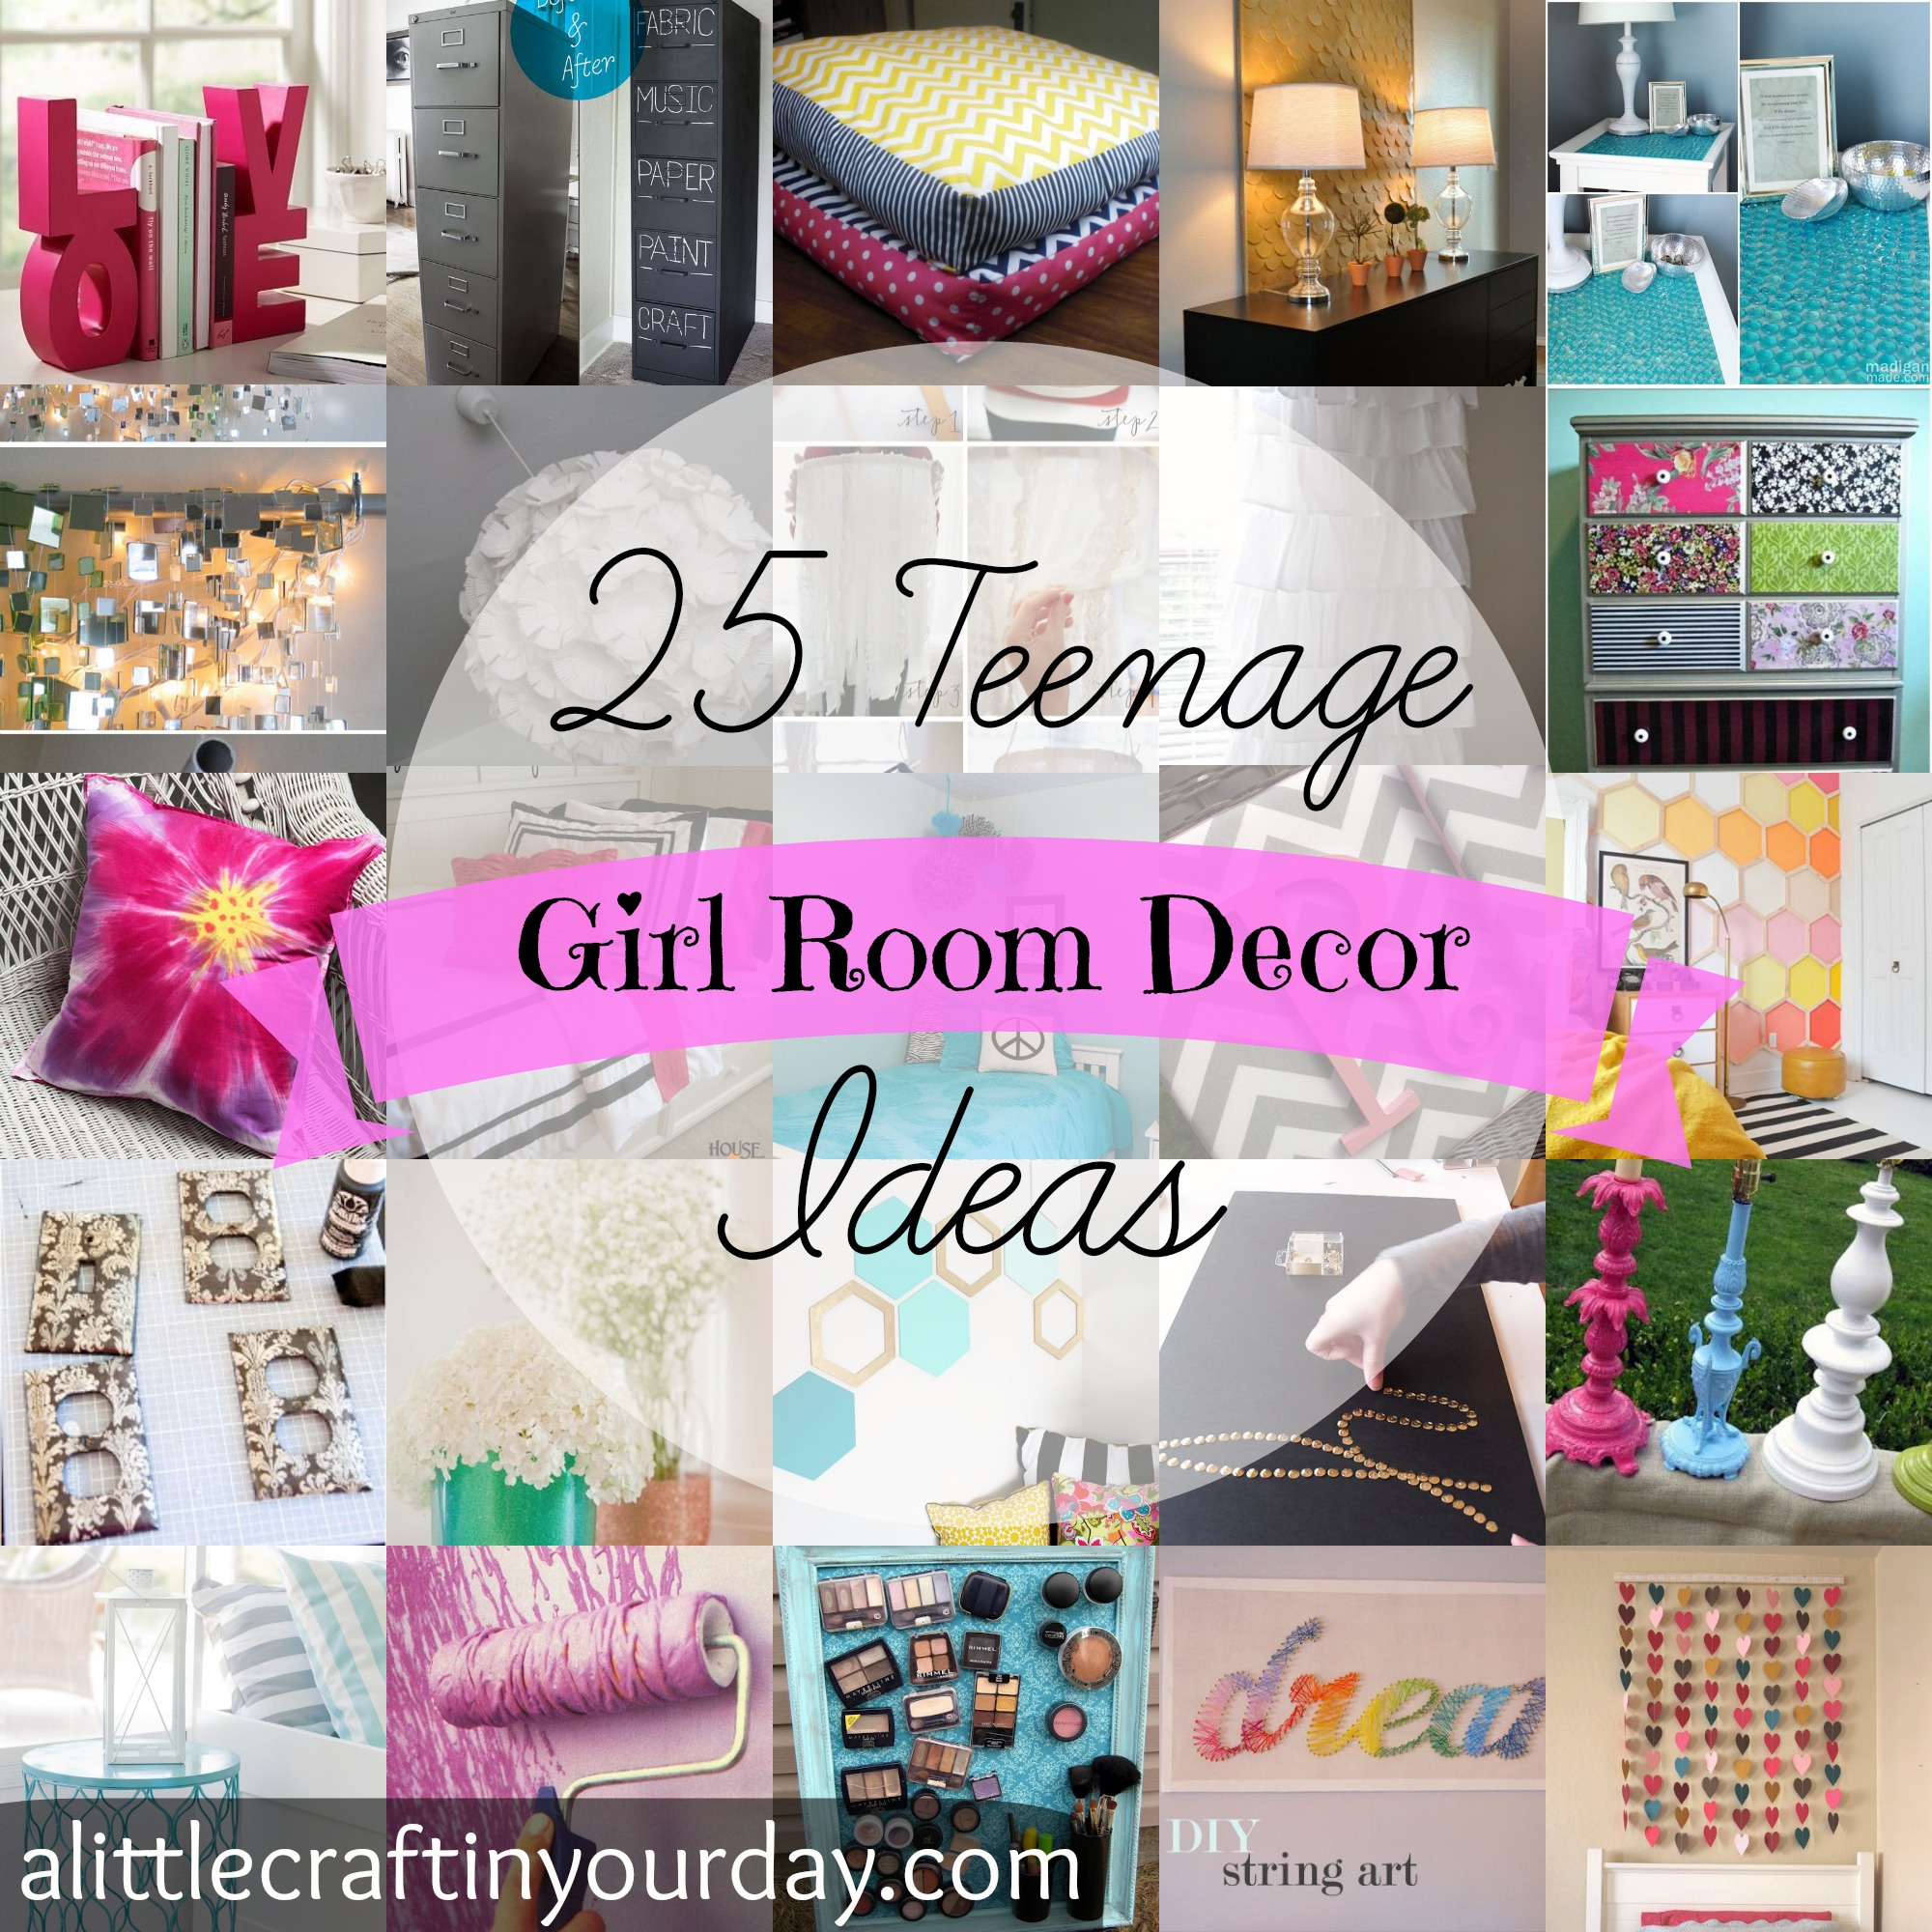 25_Teenage_Girl_Room_Decor_Ideas